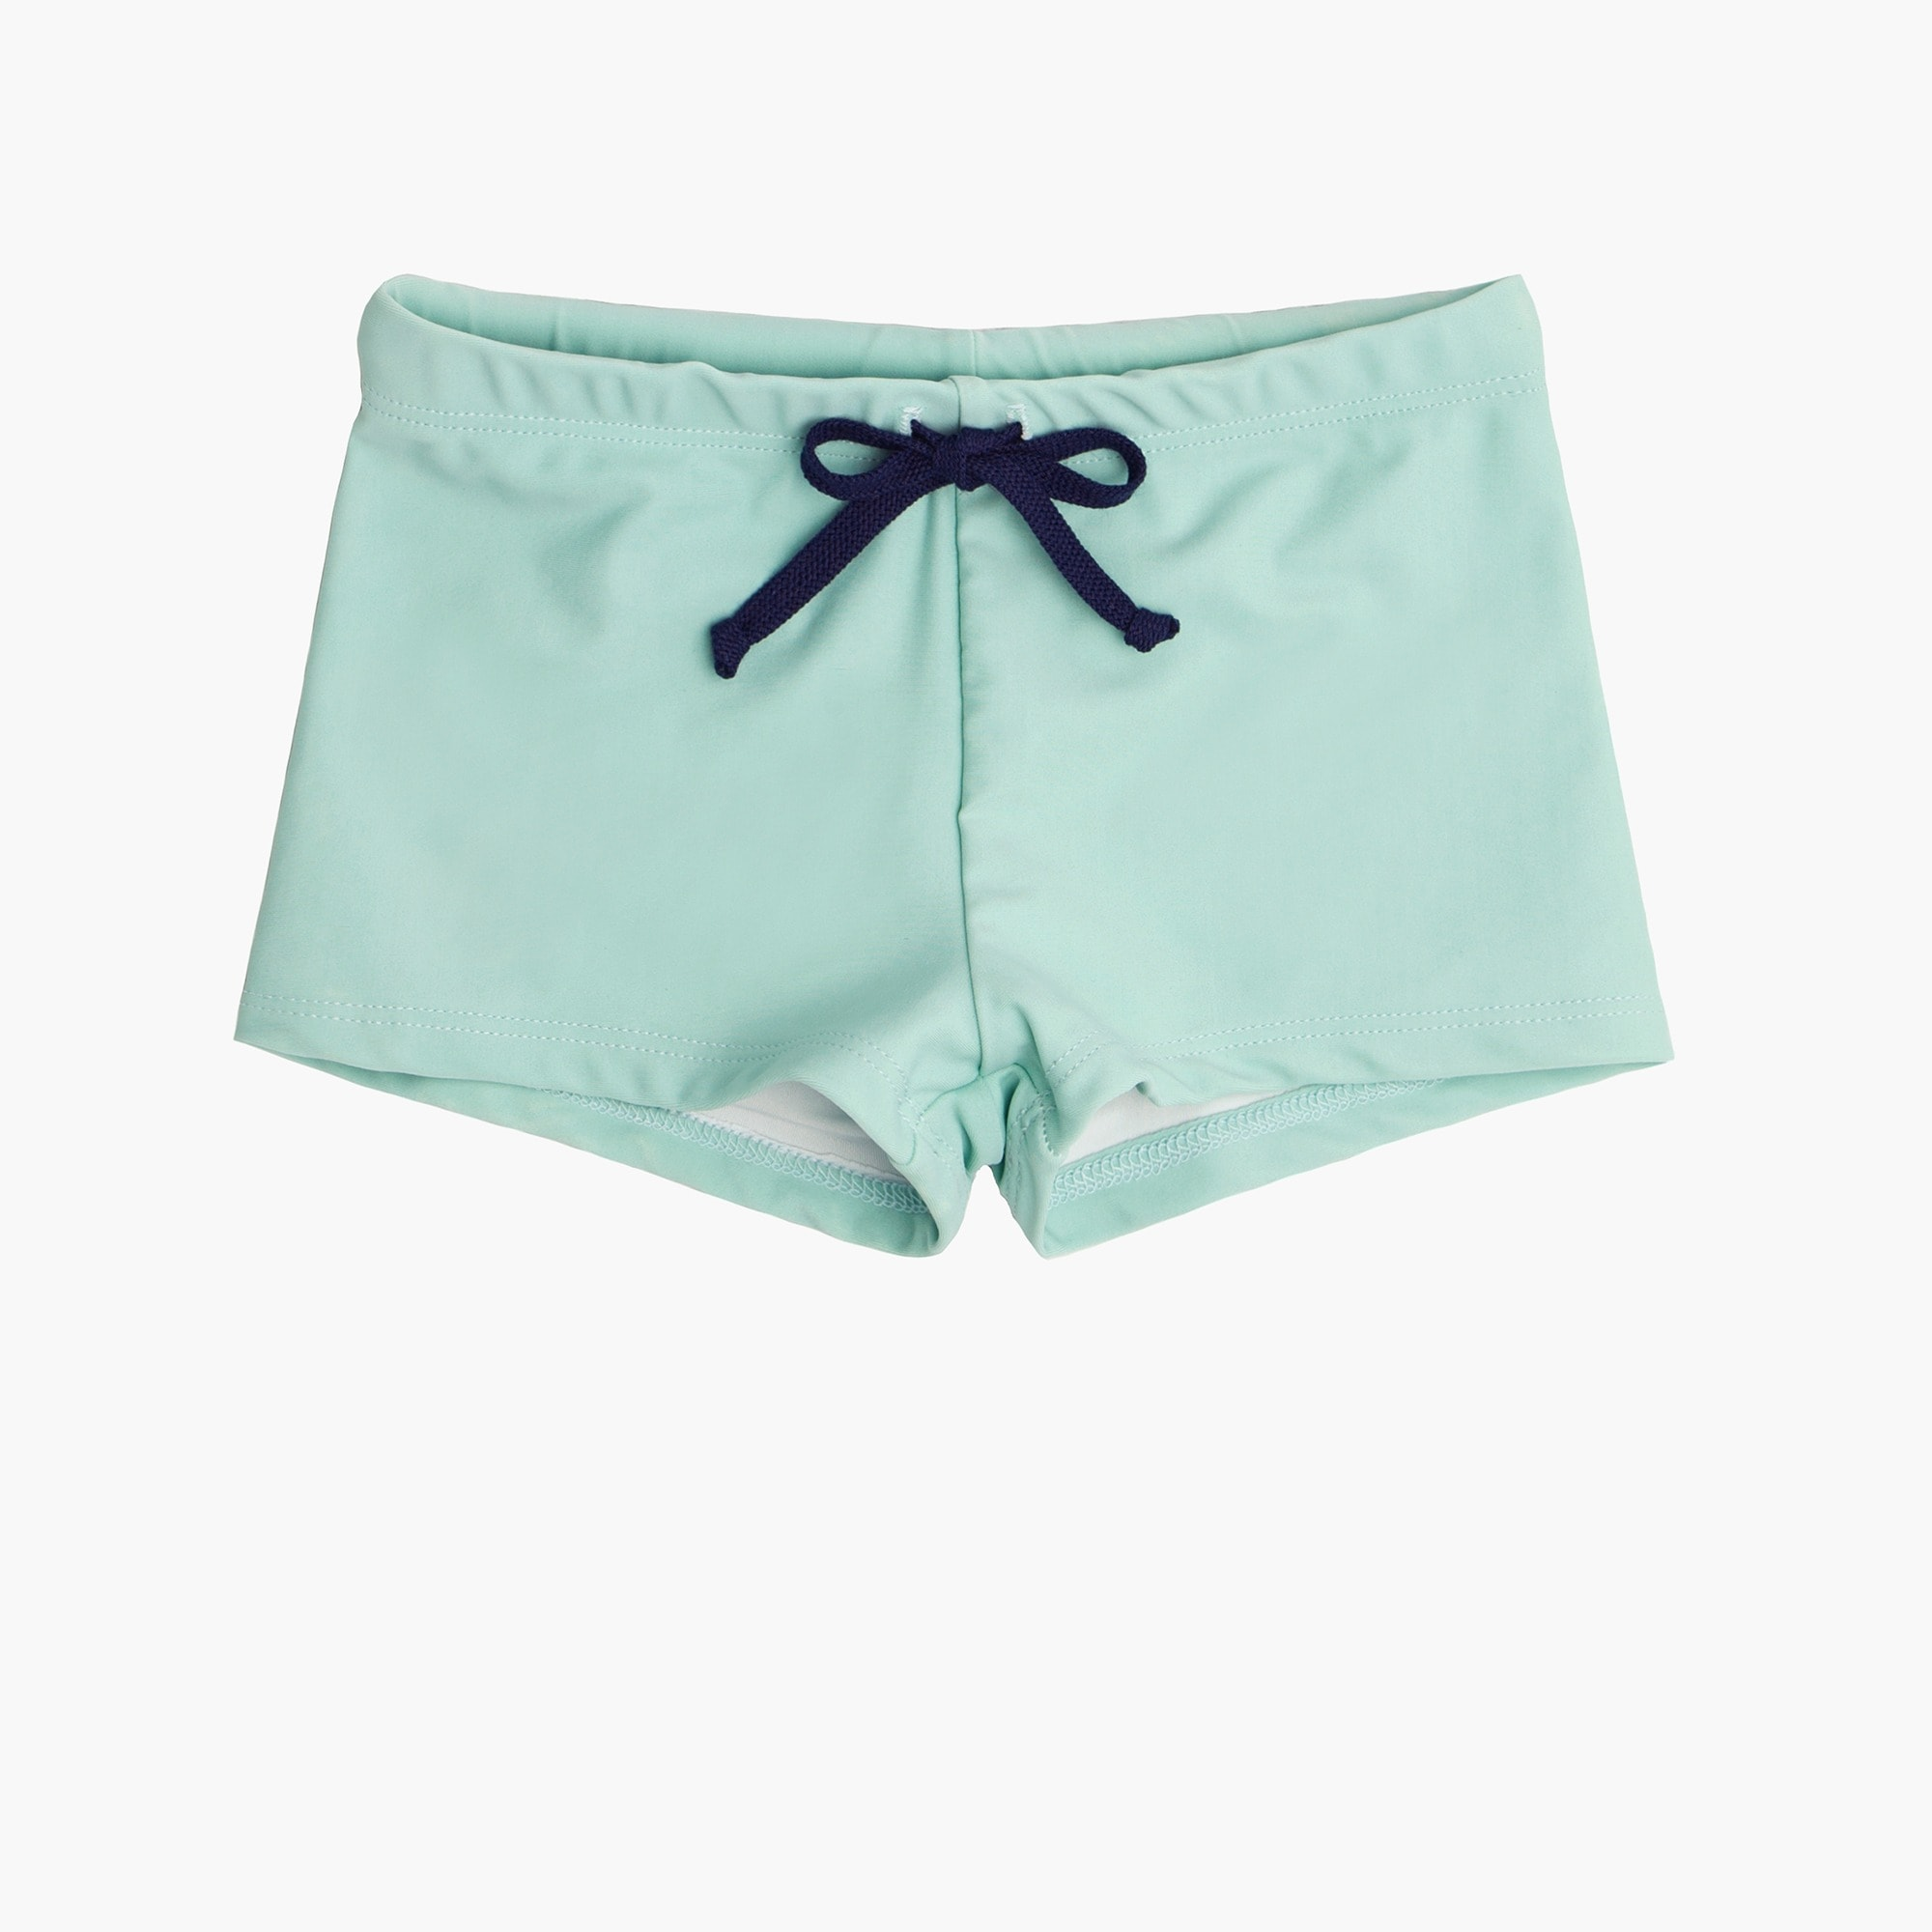 boys Boys' Minnow™ brief